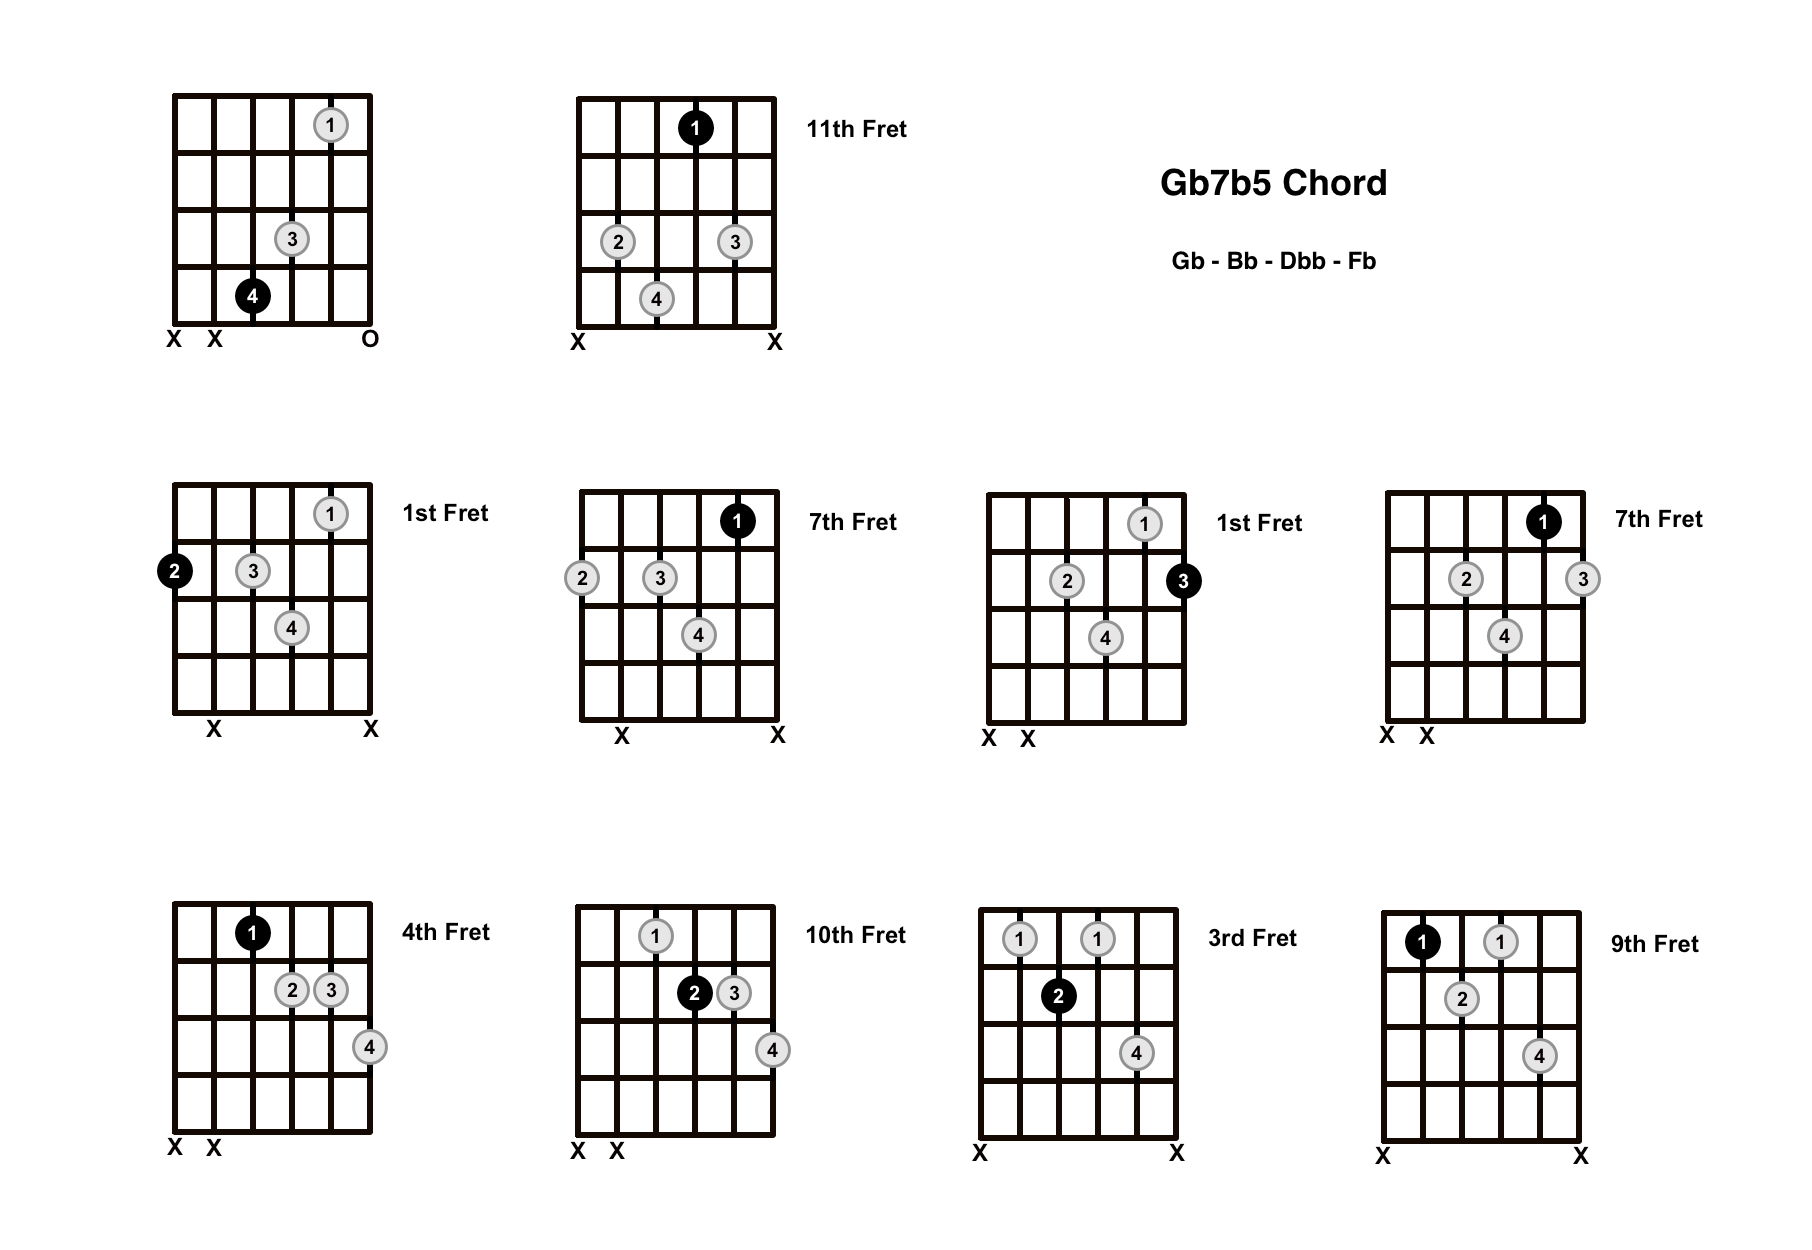 Gb7b5 Chord On The Guitar (G Flat Dominant 7 Flat 5) – Diagrams, Finger Positions and Theory